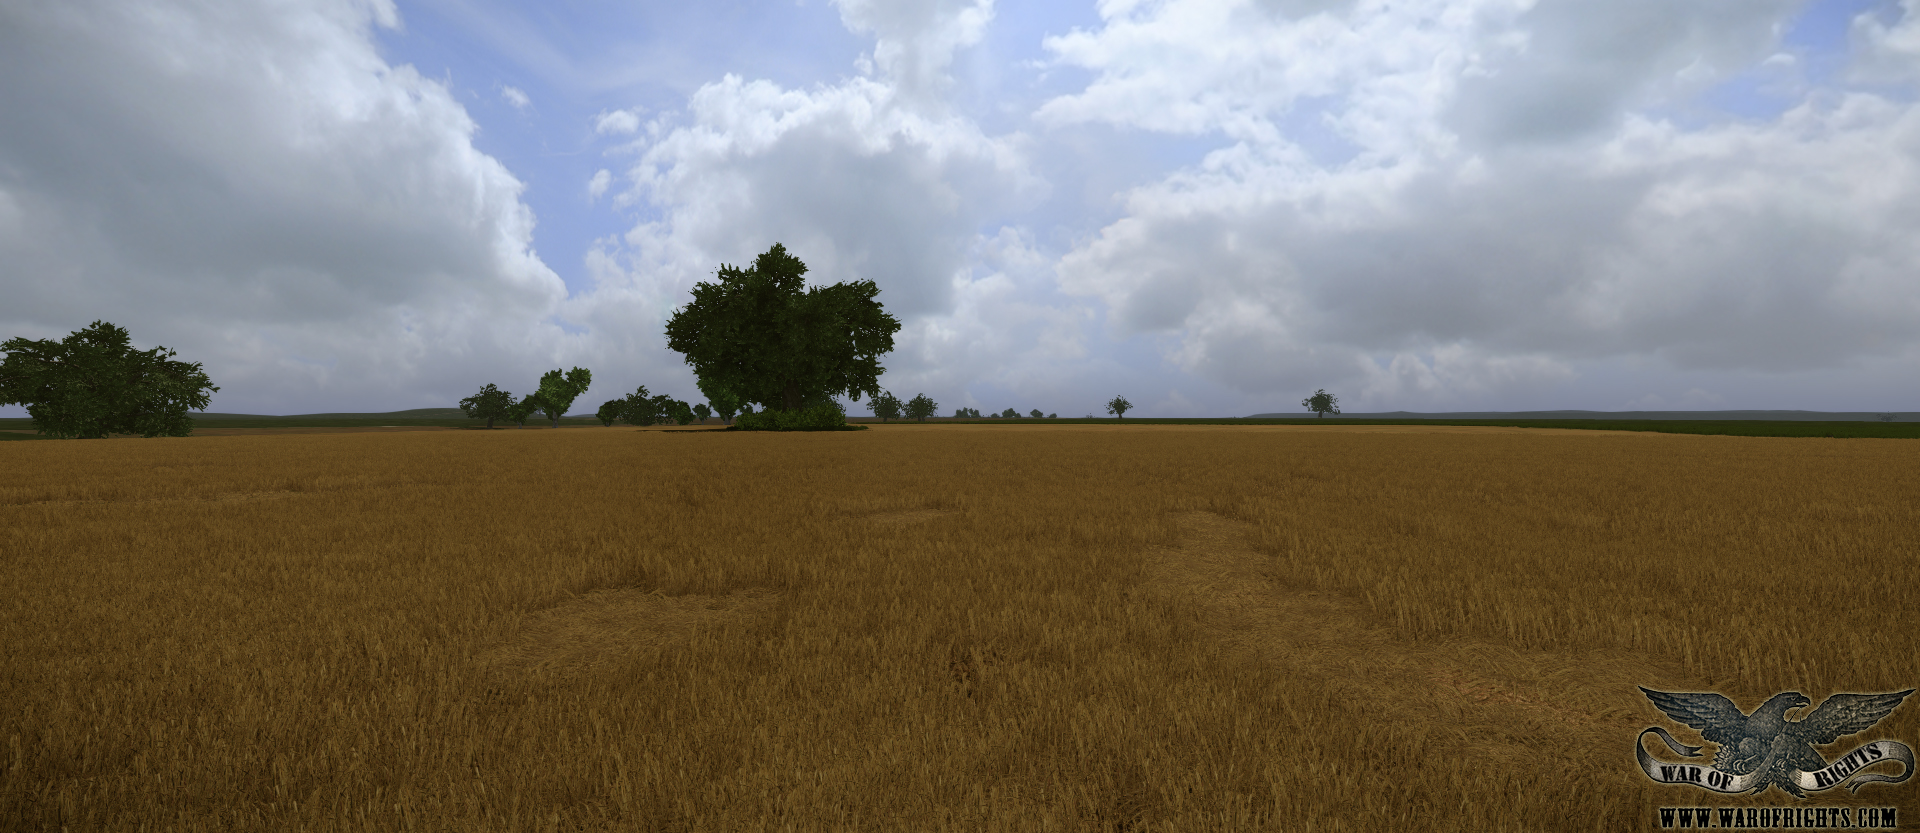 Harvested wheat field image - War of Rights - Mod DB